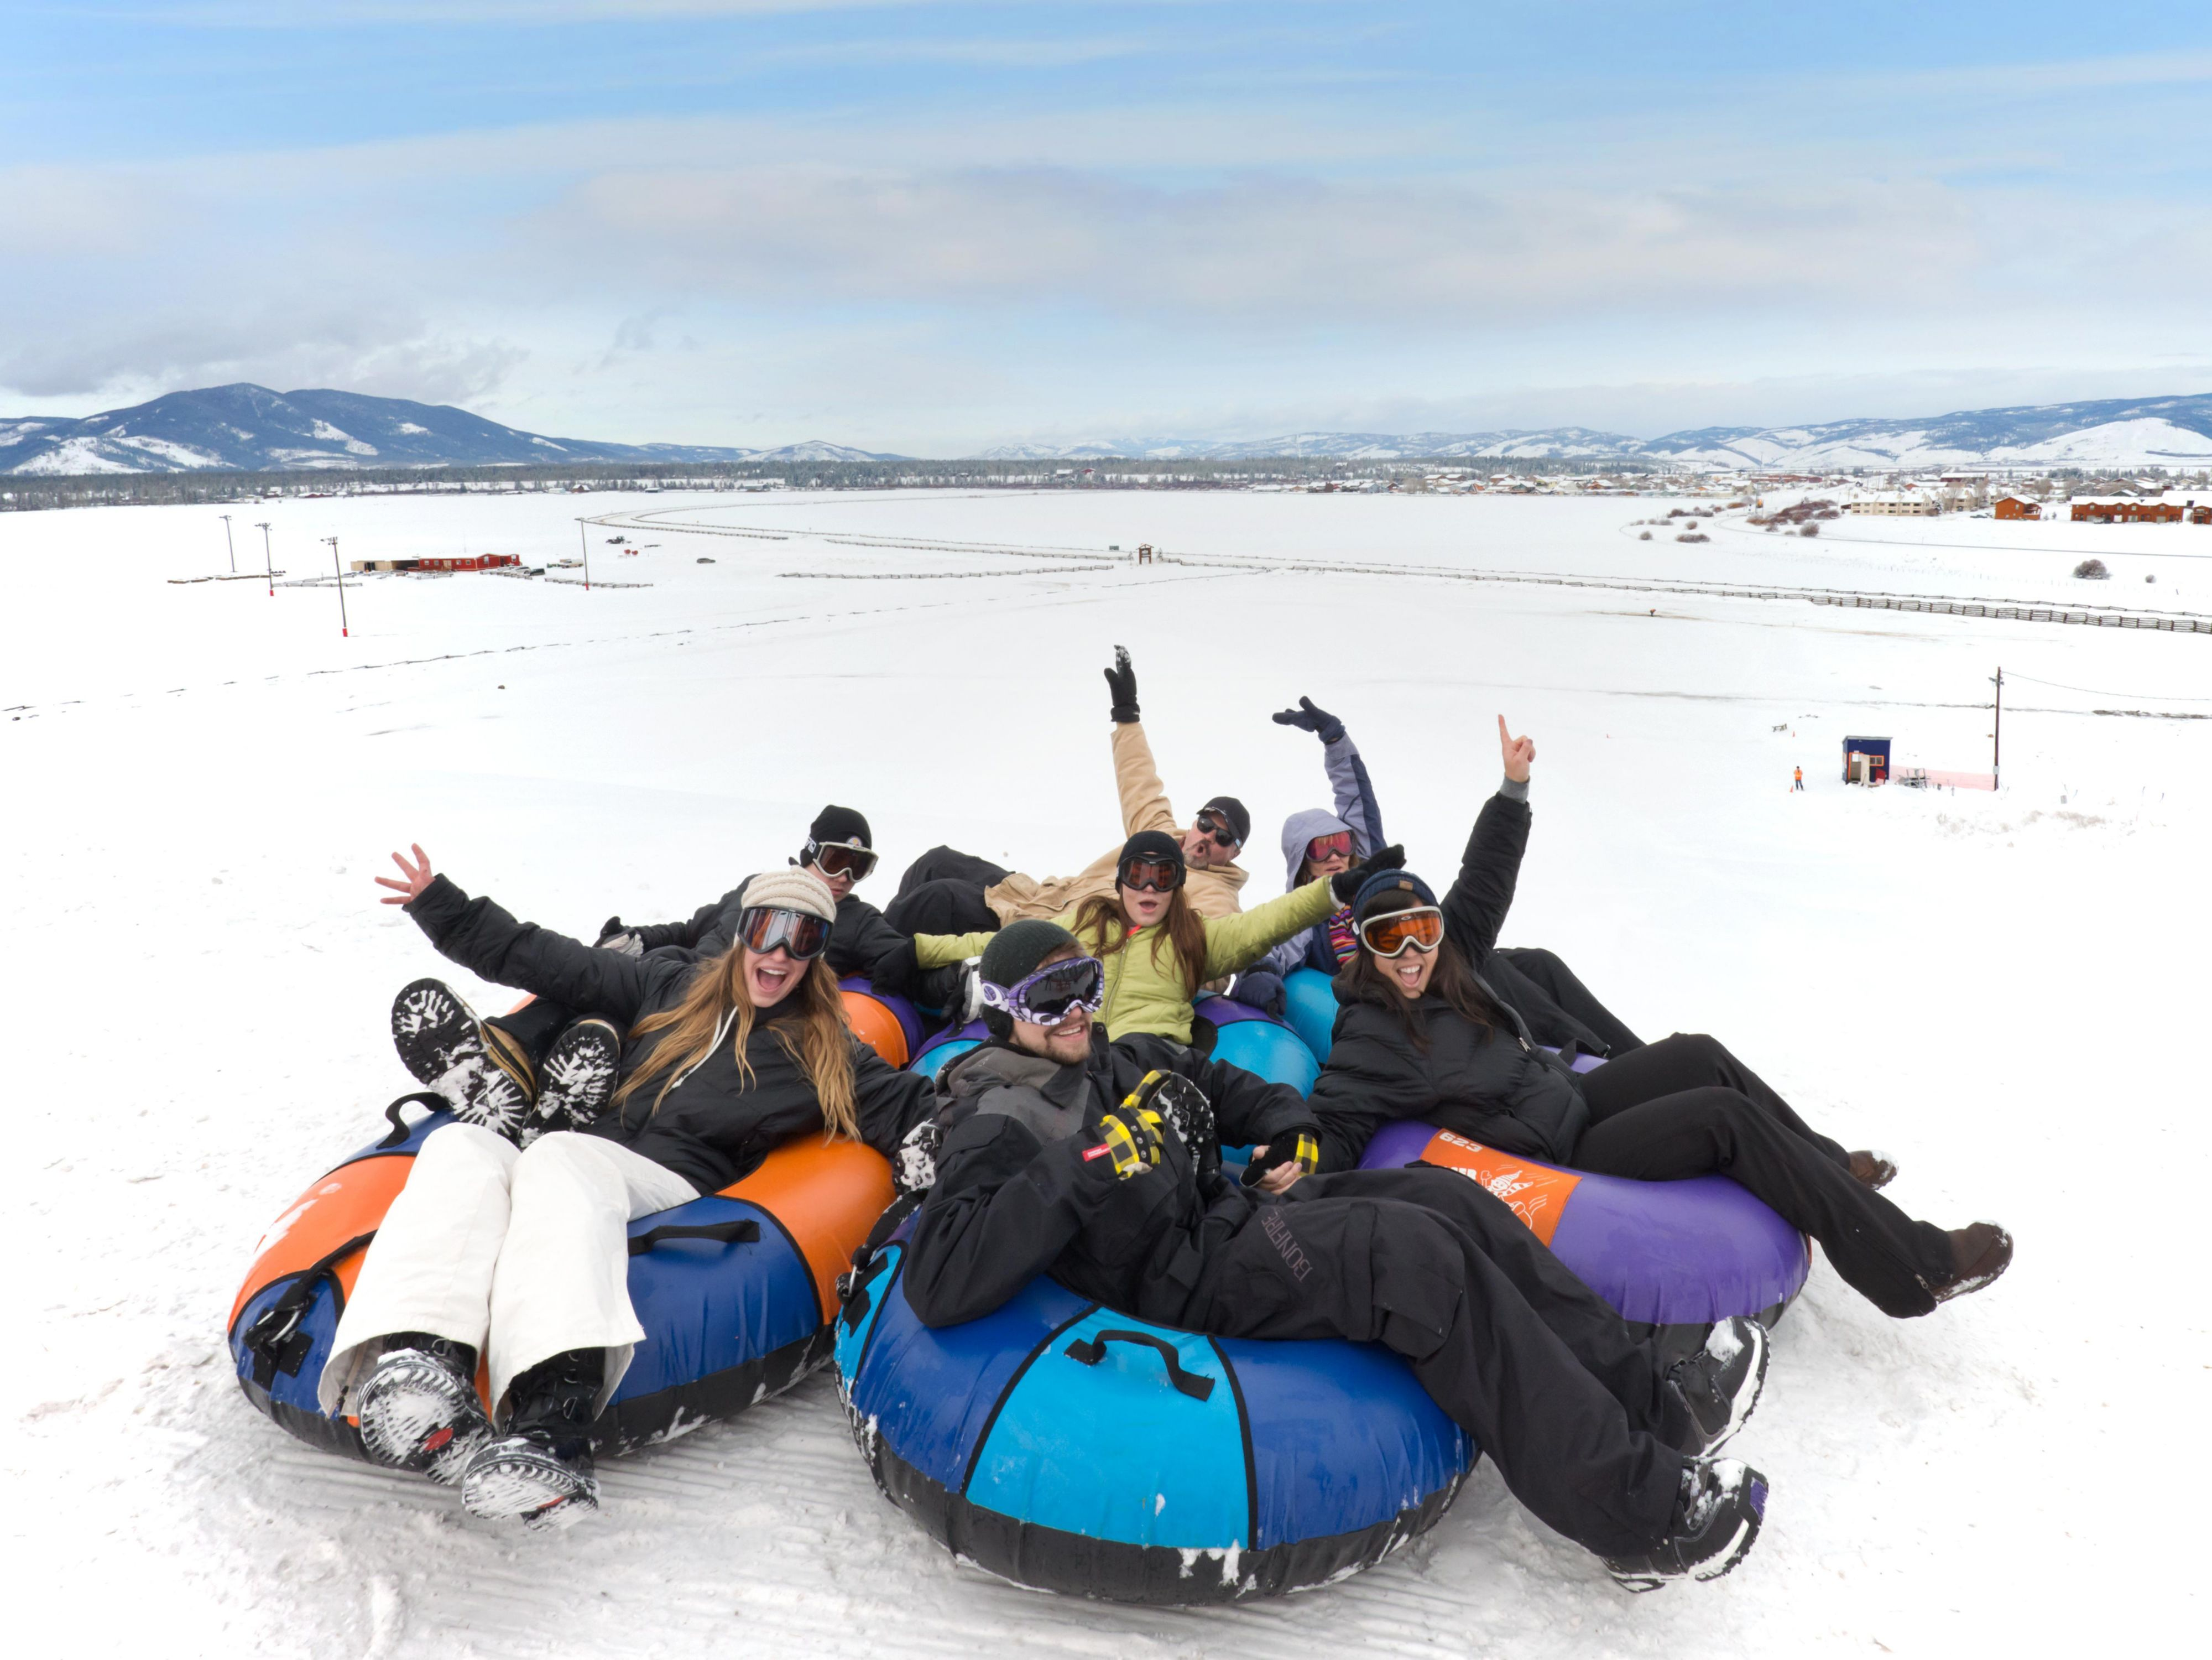 Don't leave without checking out one of Fraser's tubing hills!